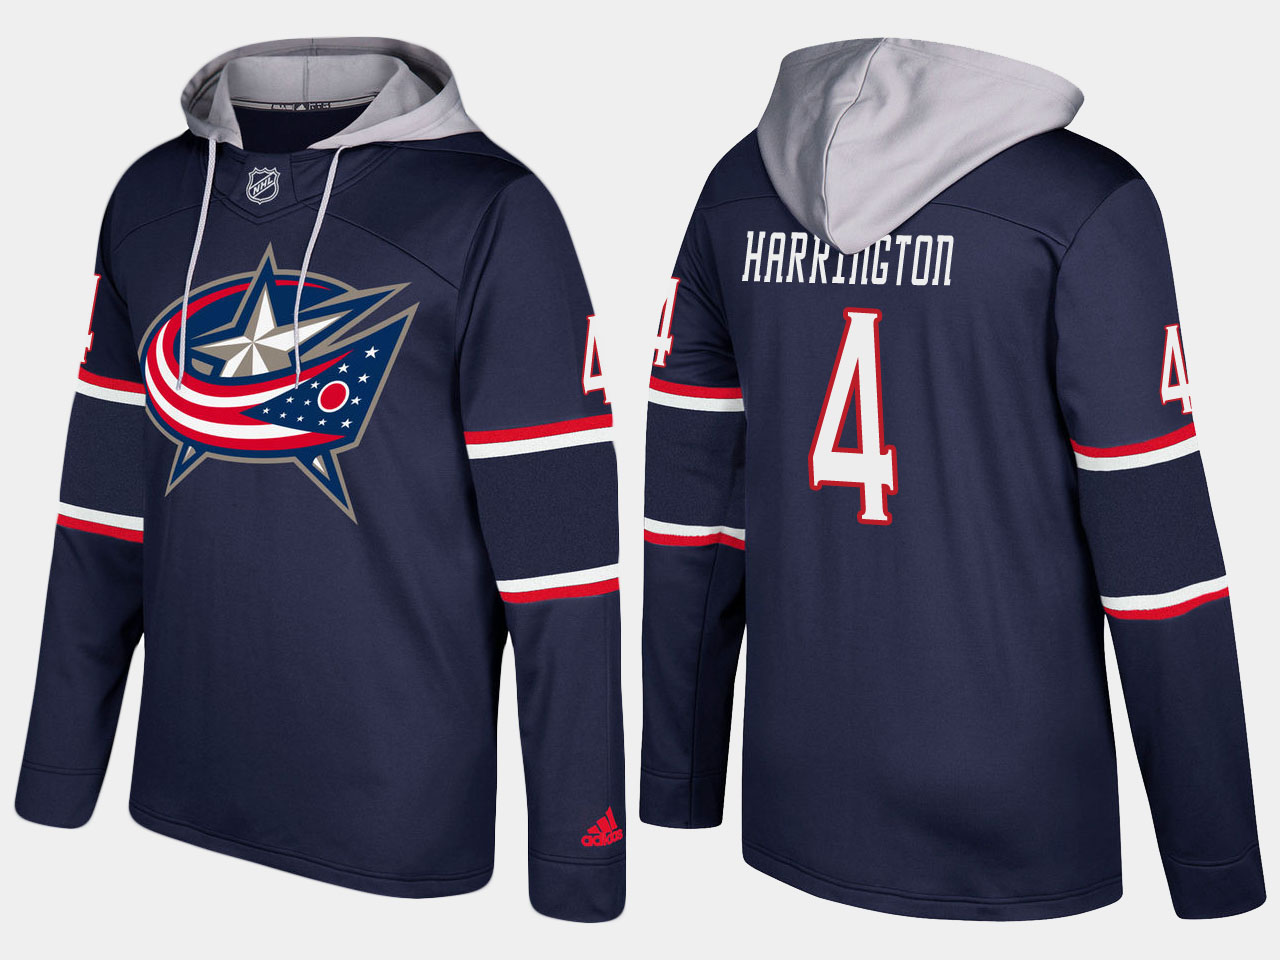 Men NHL Columbus blue jackets 4 scott harrington navy blue hoodie